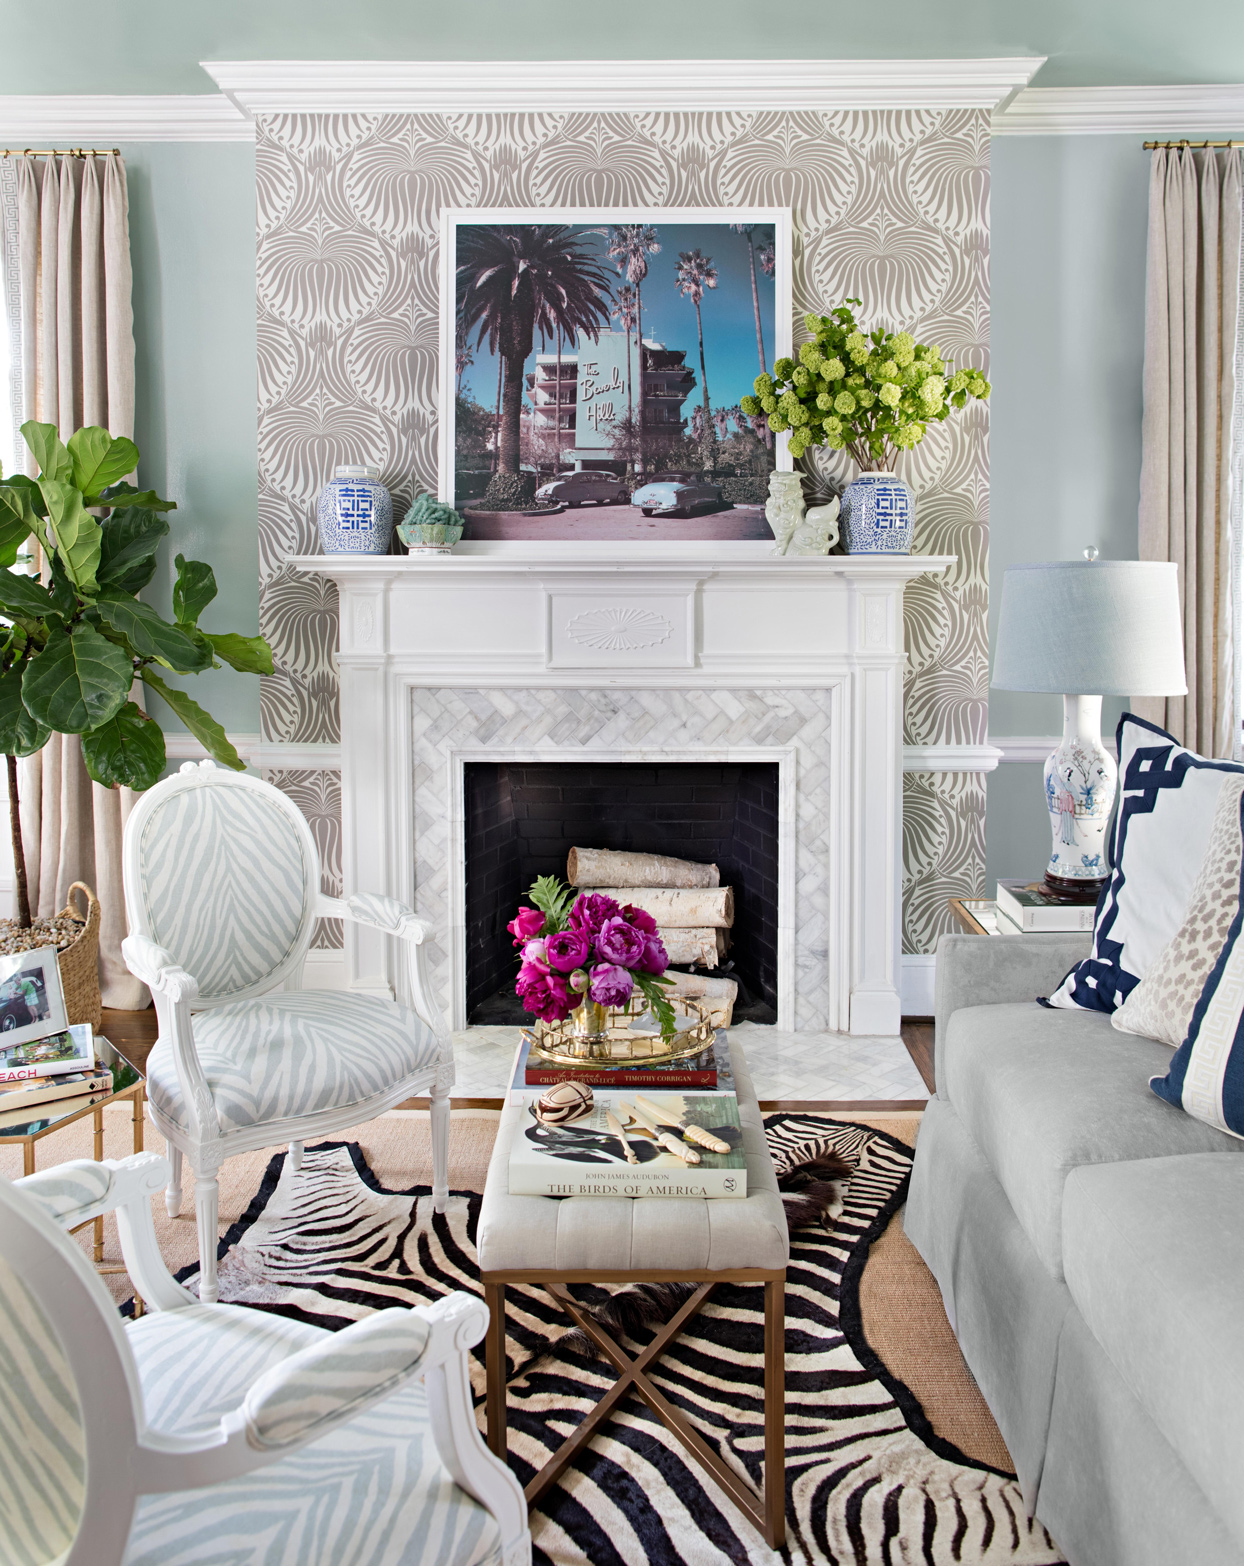 mantel decor art deco-influenced wallpaper